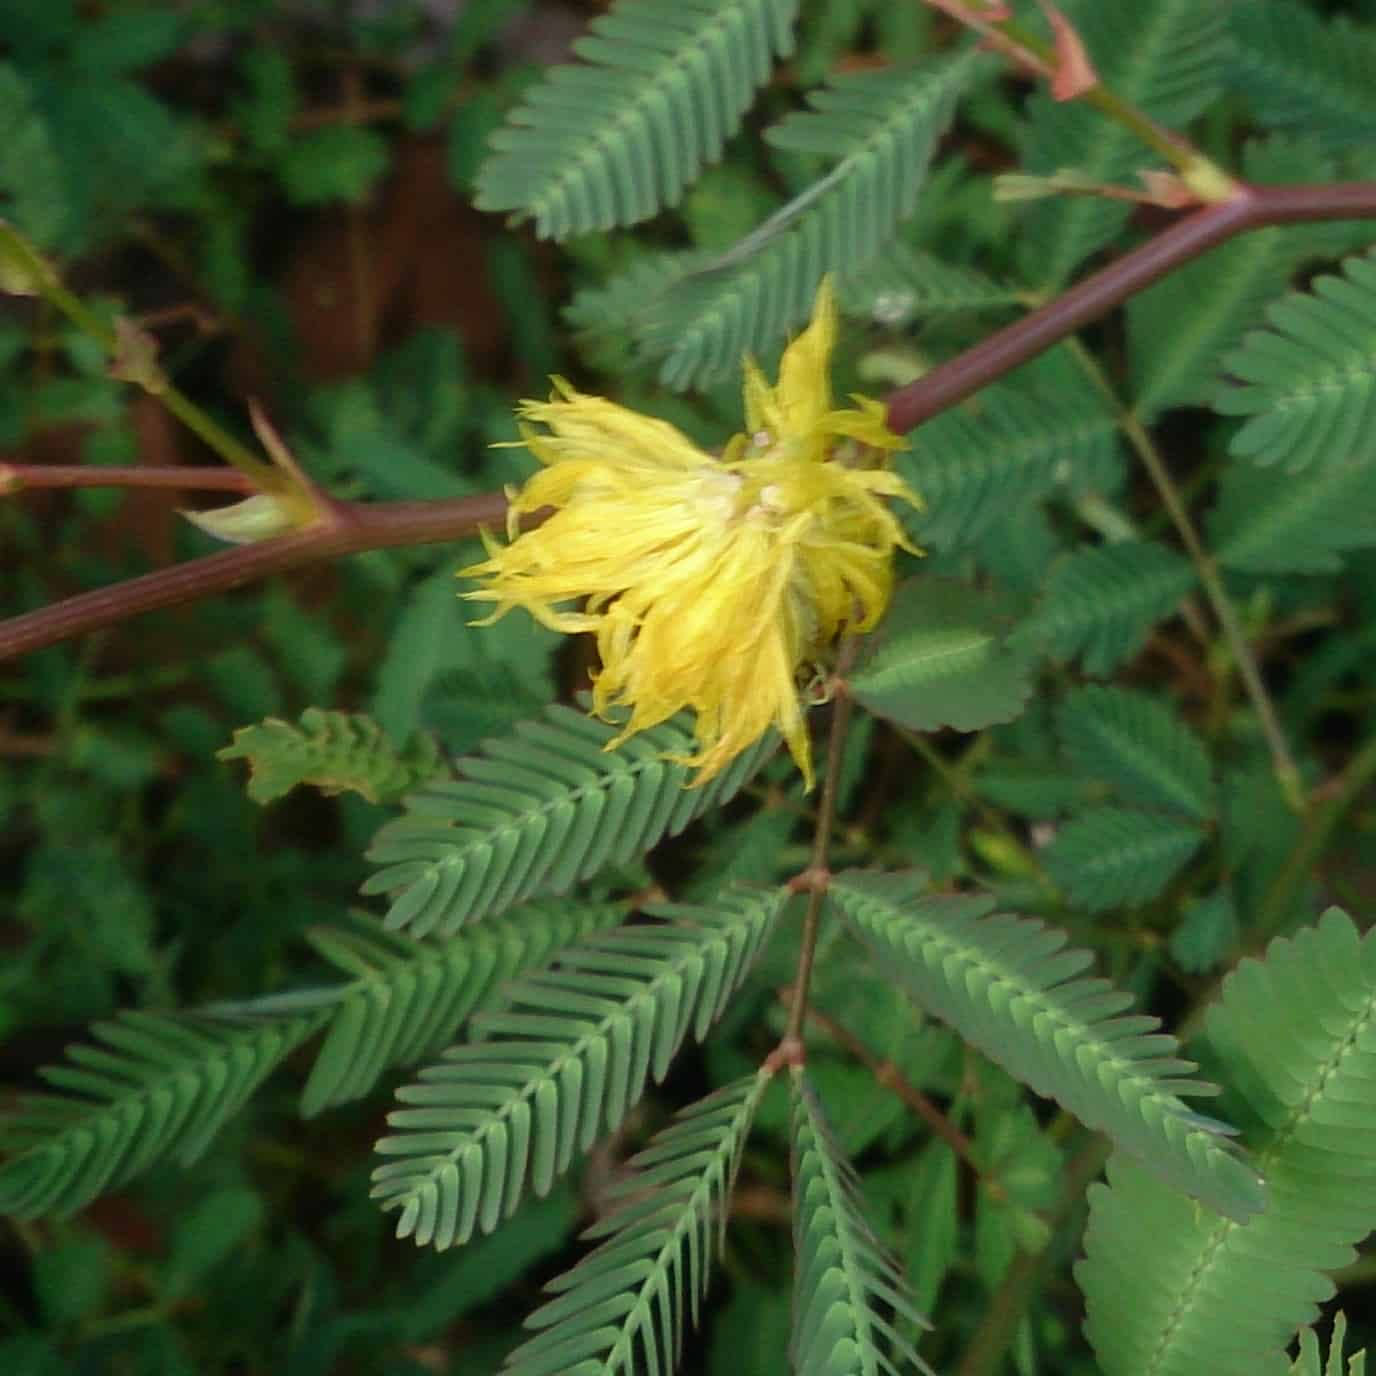 Water mimosa with yellow flowering growing in damp soils near water